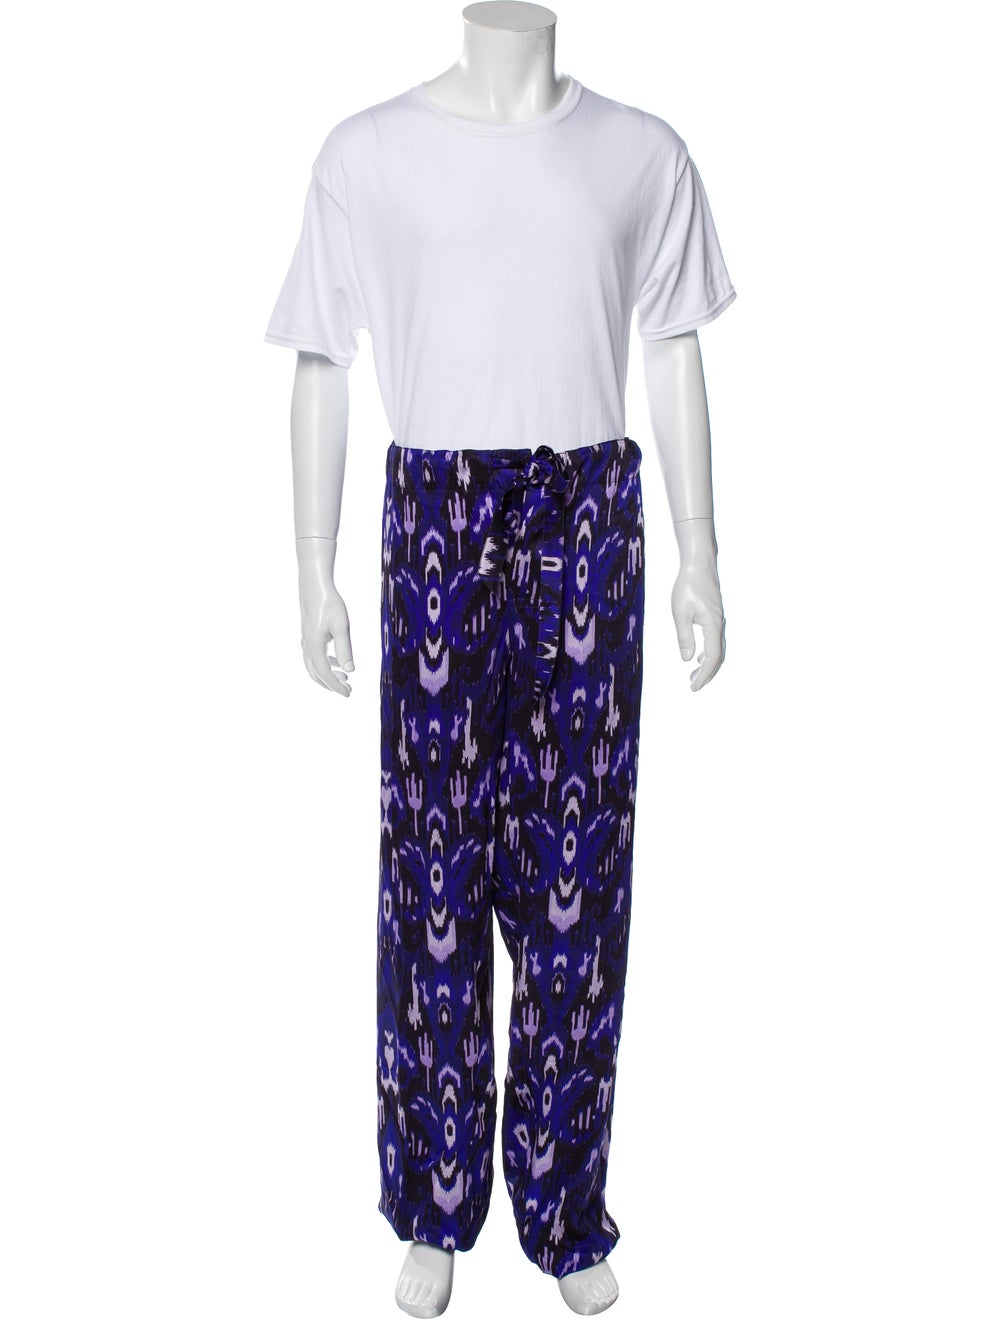 Tom Ford Silk Graphic Print Pajama Set Purple - image 4